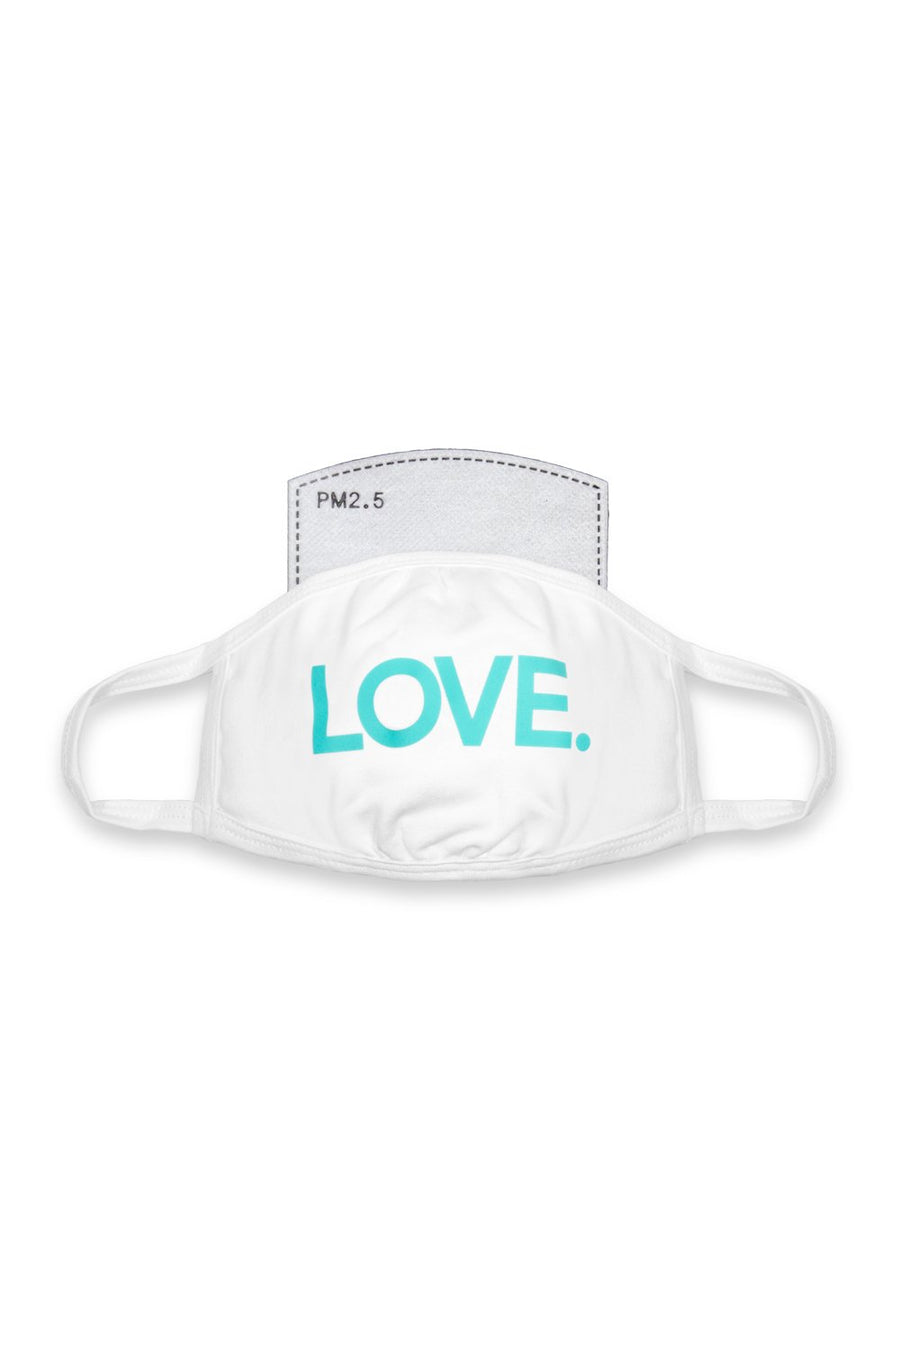 LOVE All Caps Mask White/Turquoise